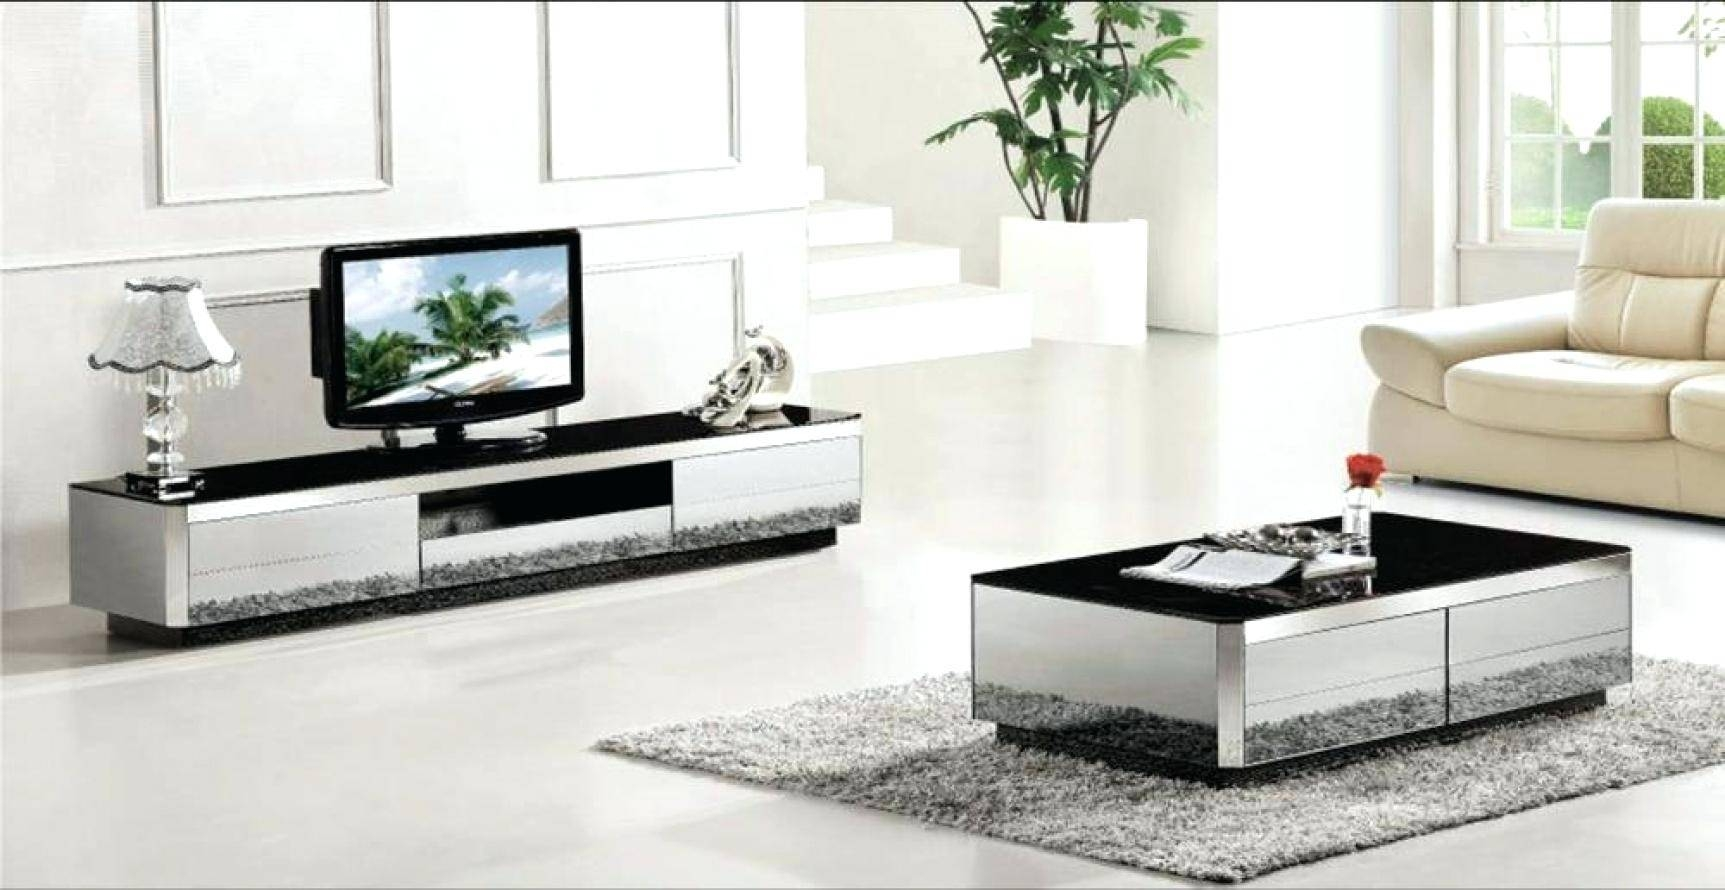 Coffee Table Sets With Matching Tv Stand | Coffee Tables Decoration regarding Tv Cabinet and Coffee Table Sets (Image 9 of 30)